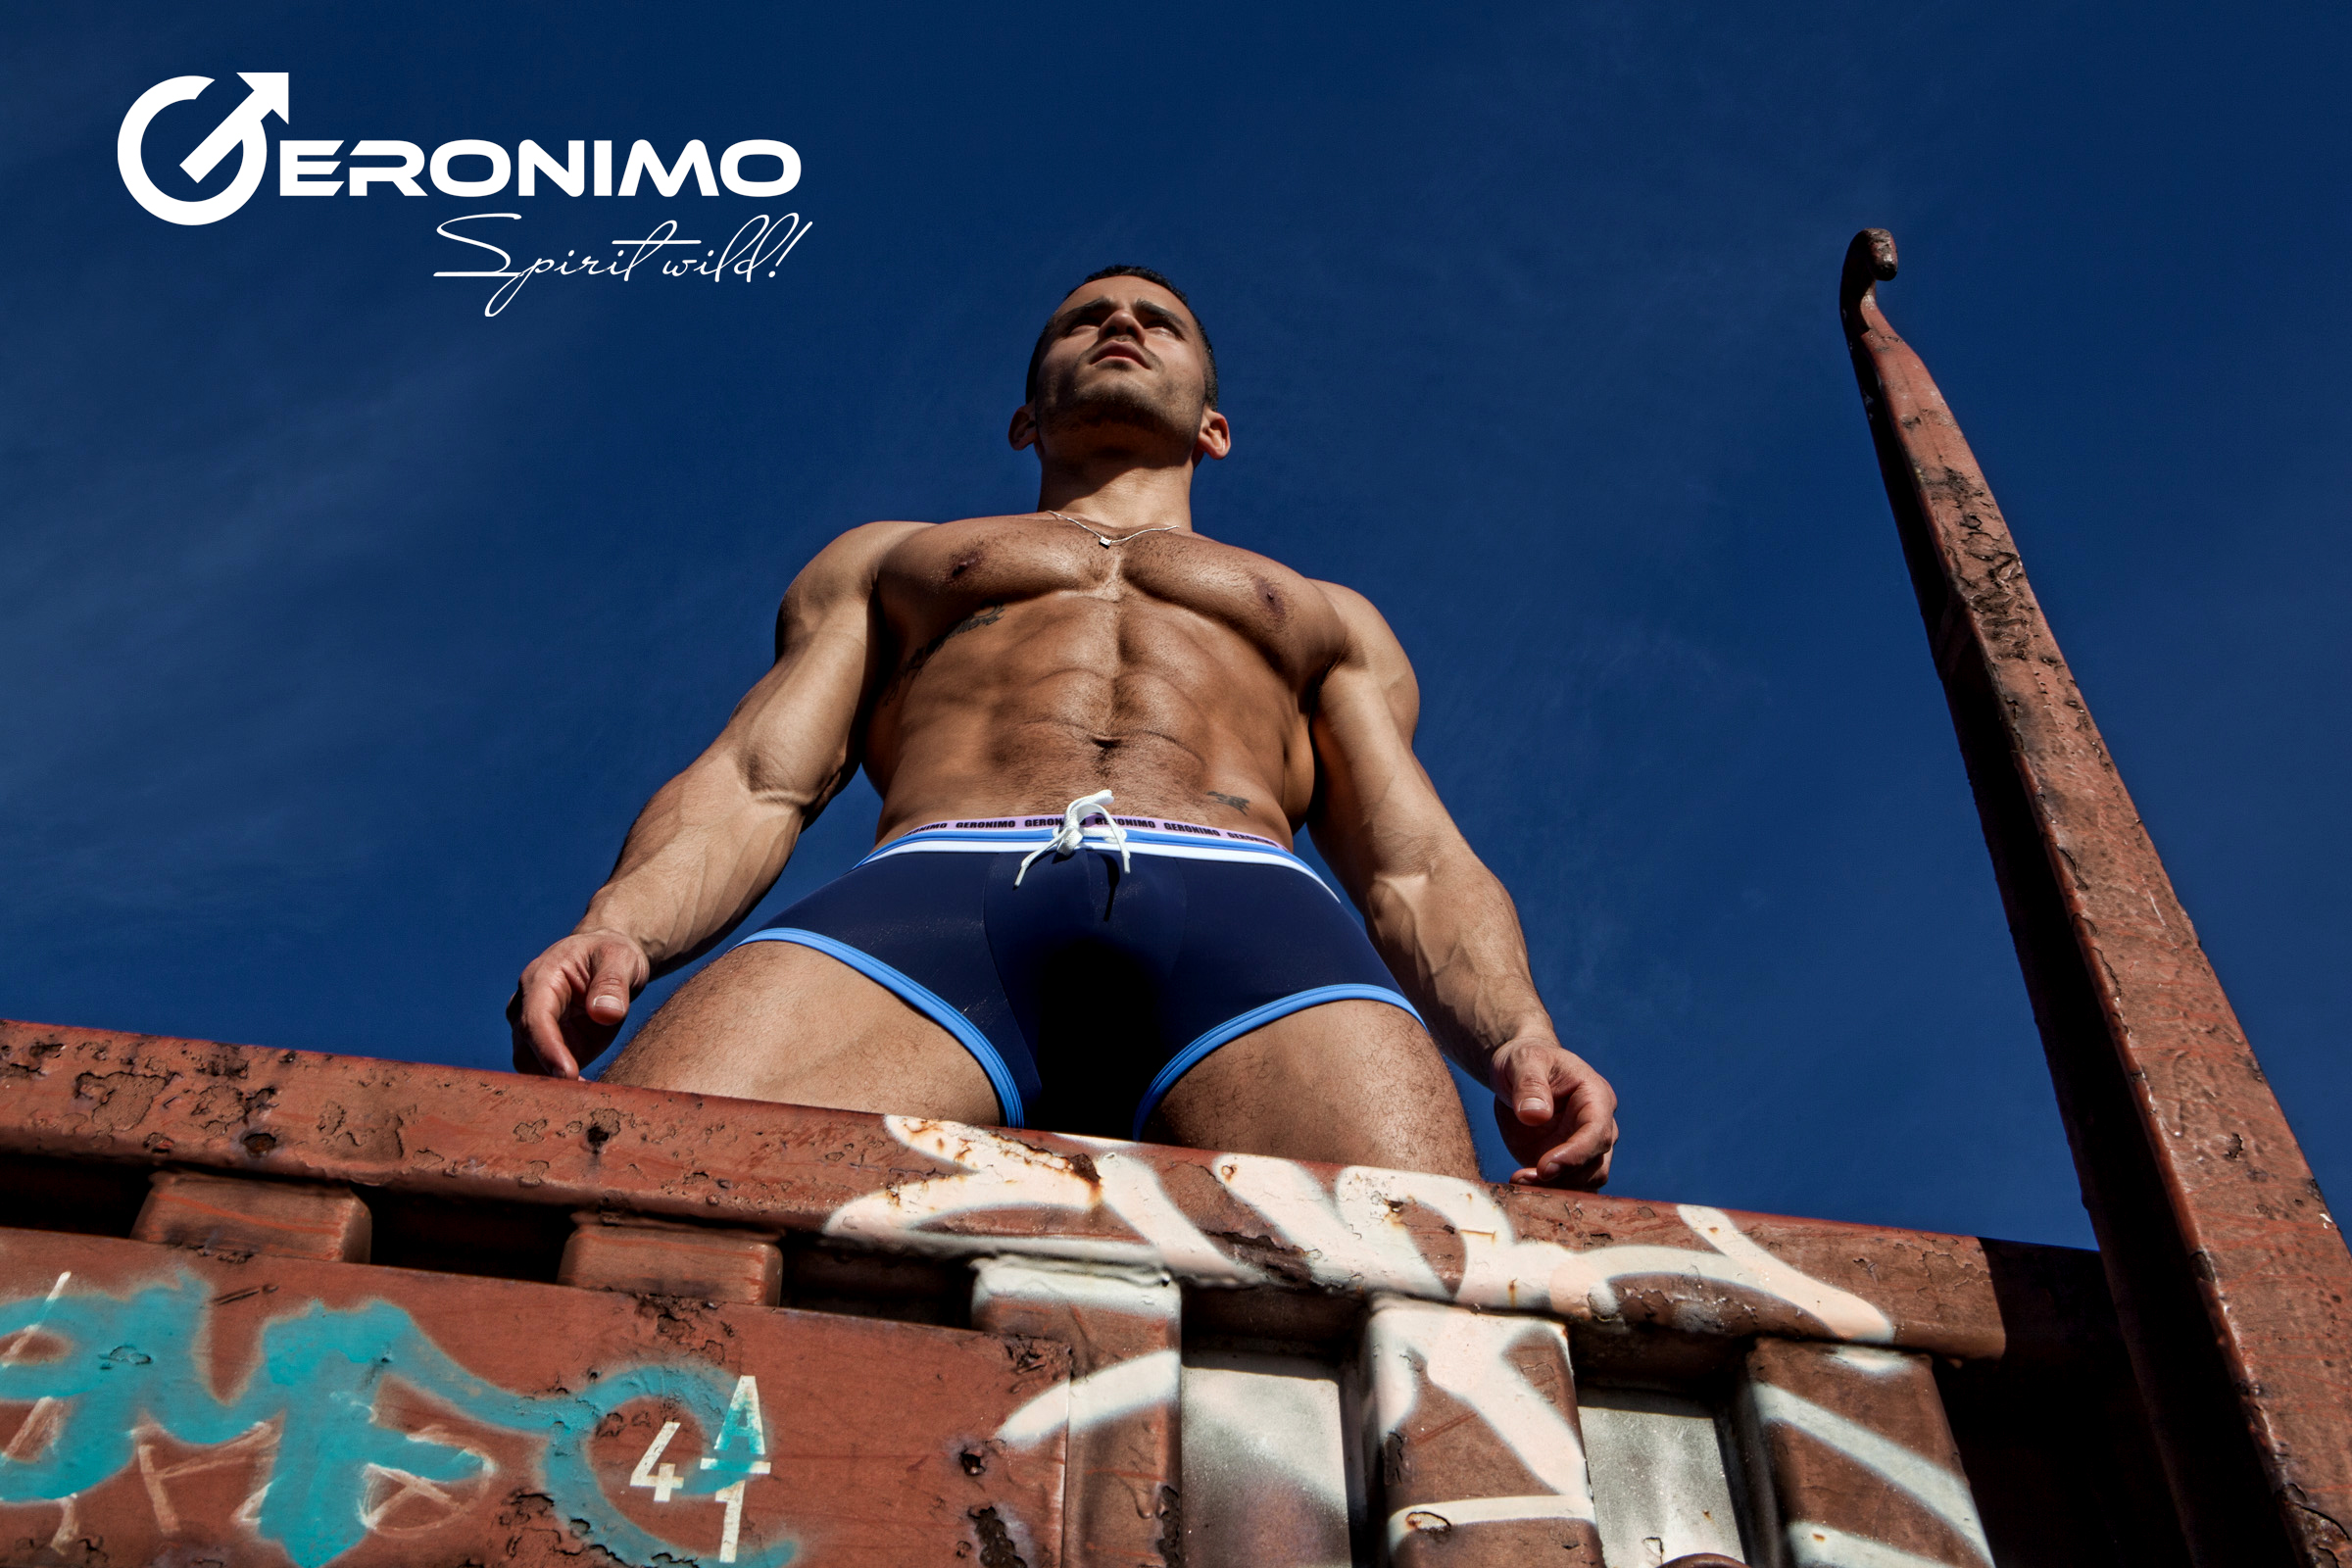 Geronimo Swimwear And Underwear 171203 00 (16)